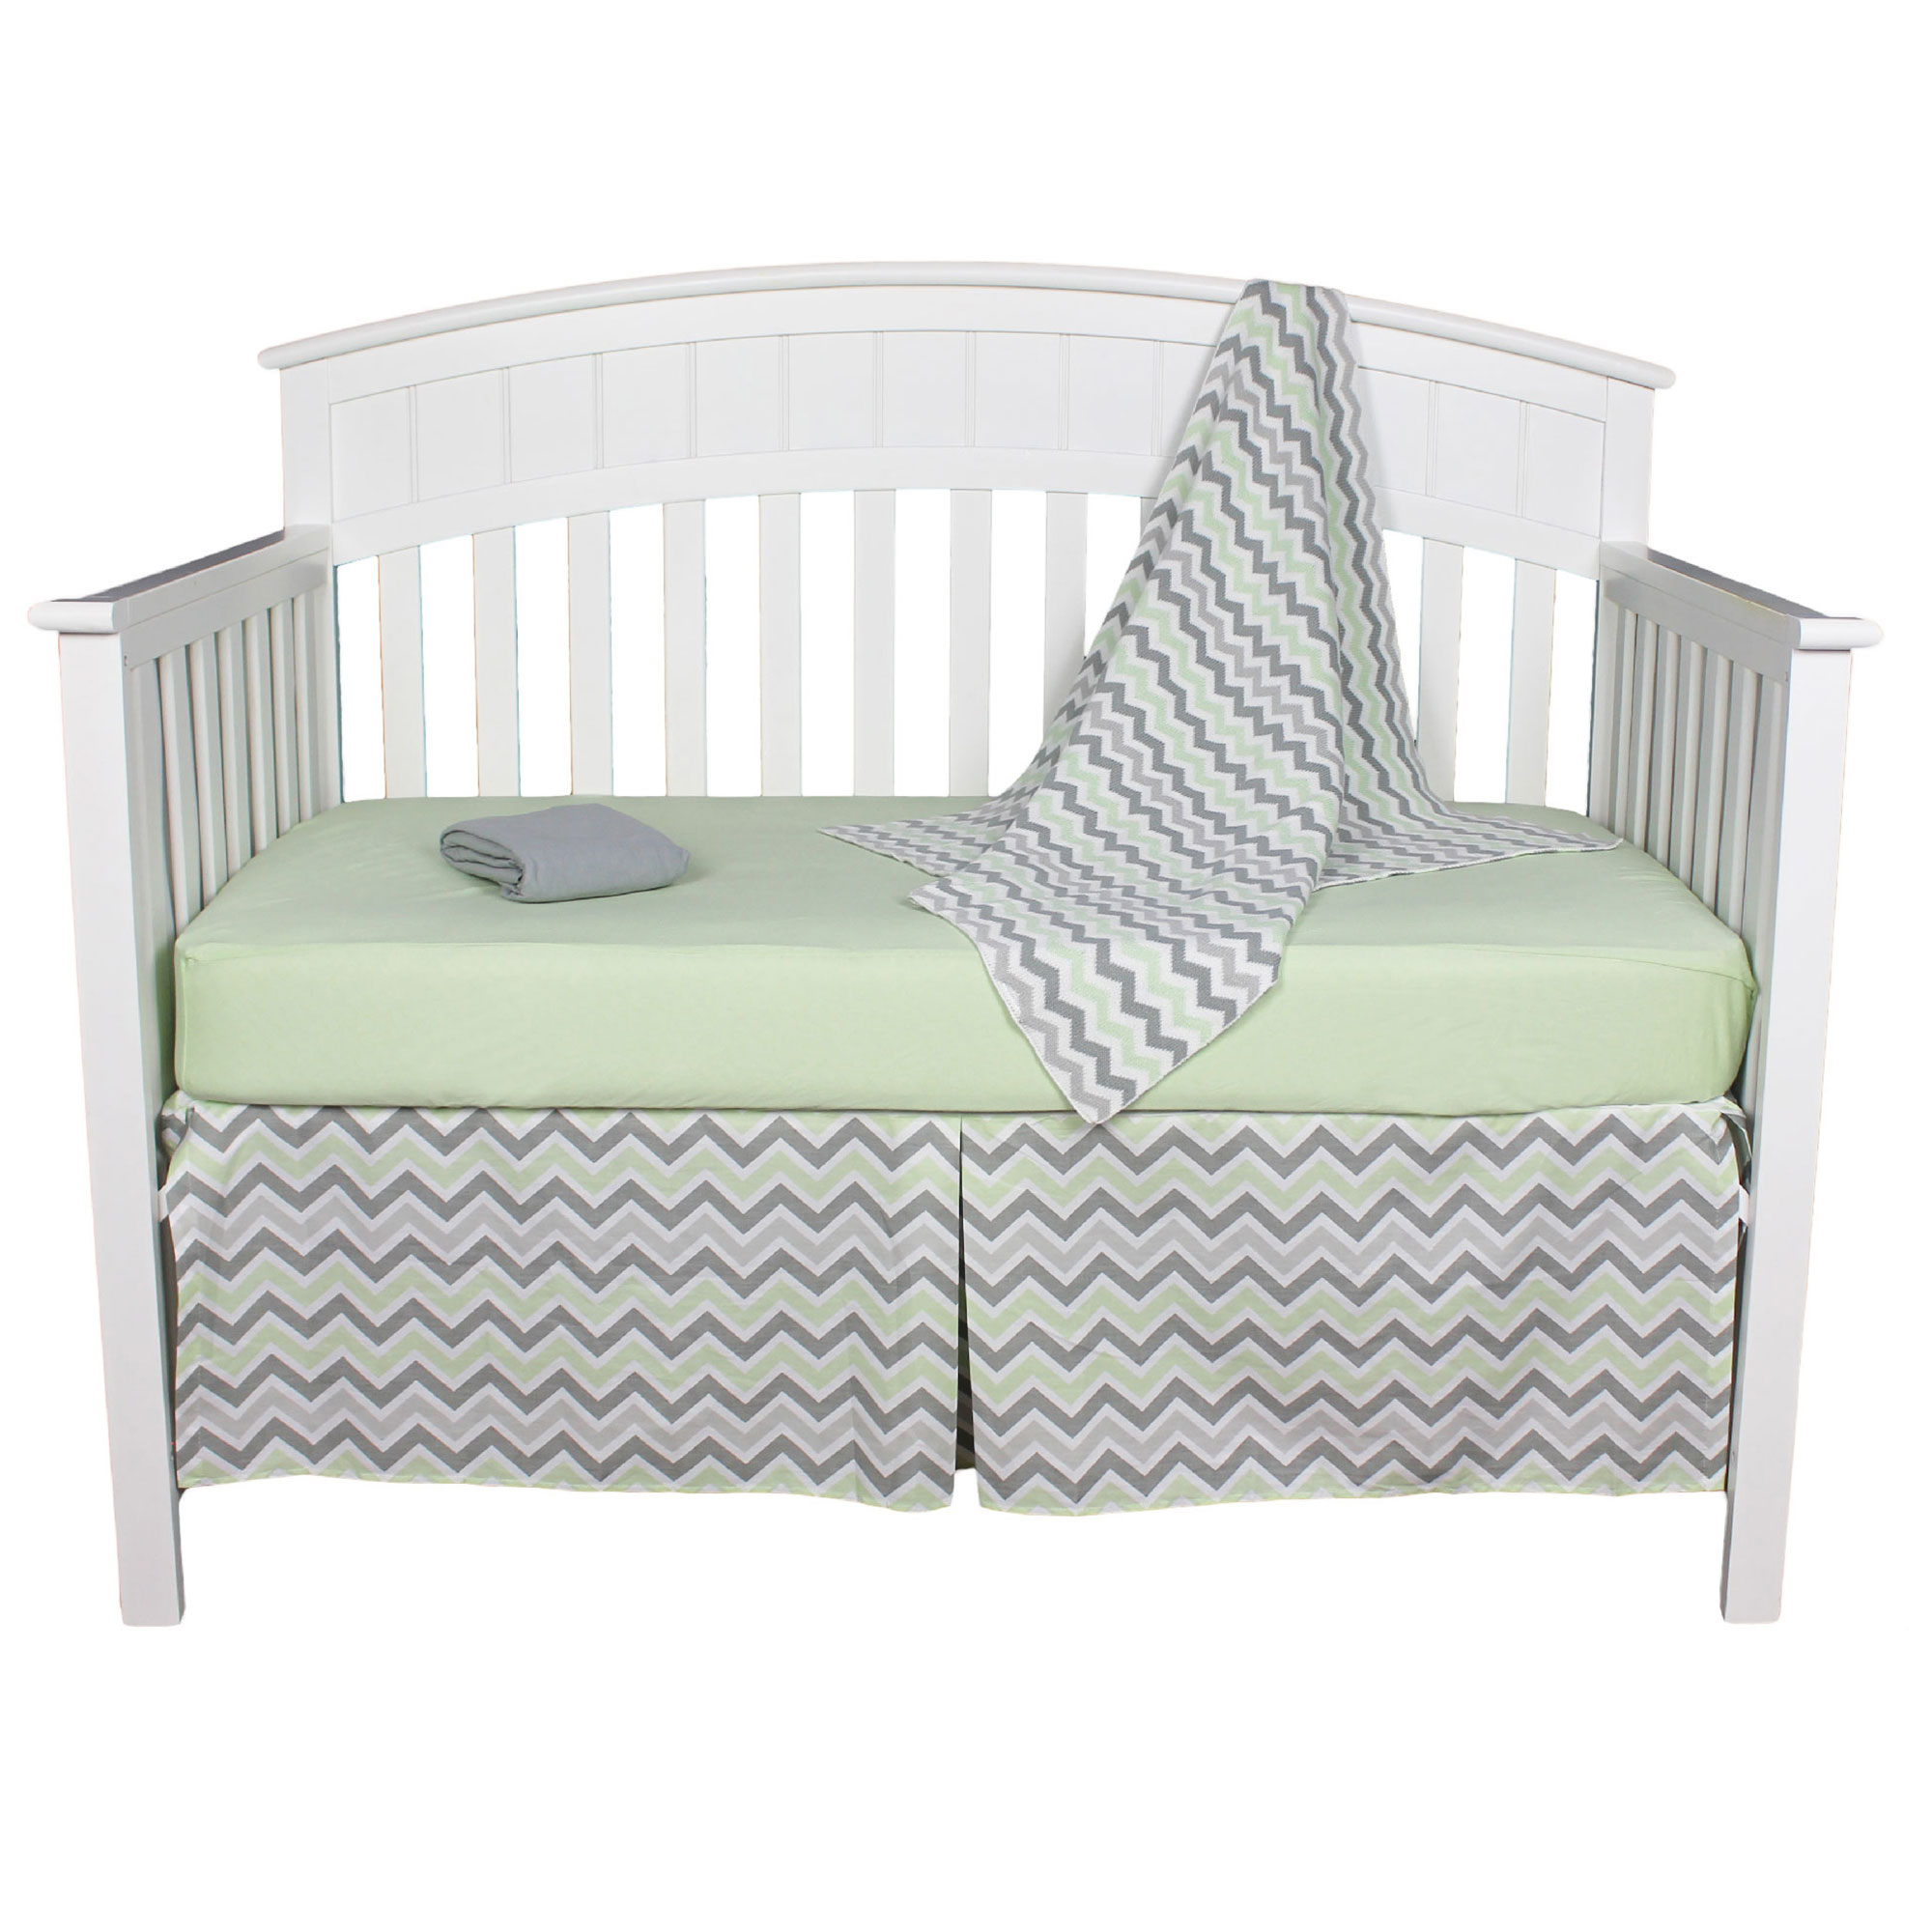 American Baby Company Crib Bedding Set - Celery and Gray Zig Zag - Green Chevron 4 Piece Baby Bedding Set